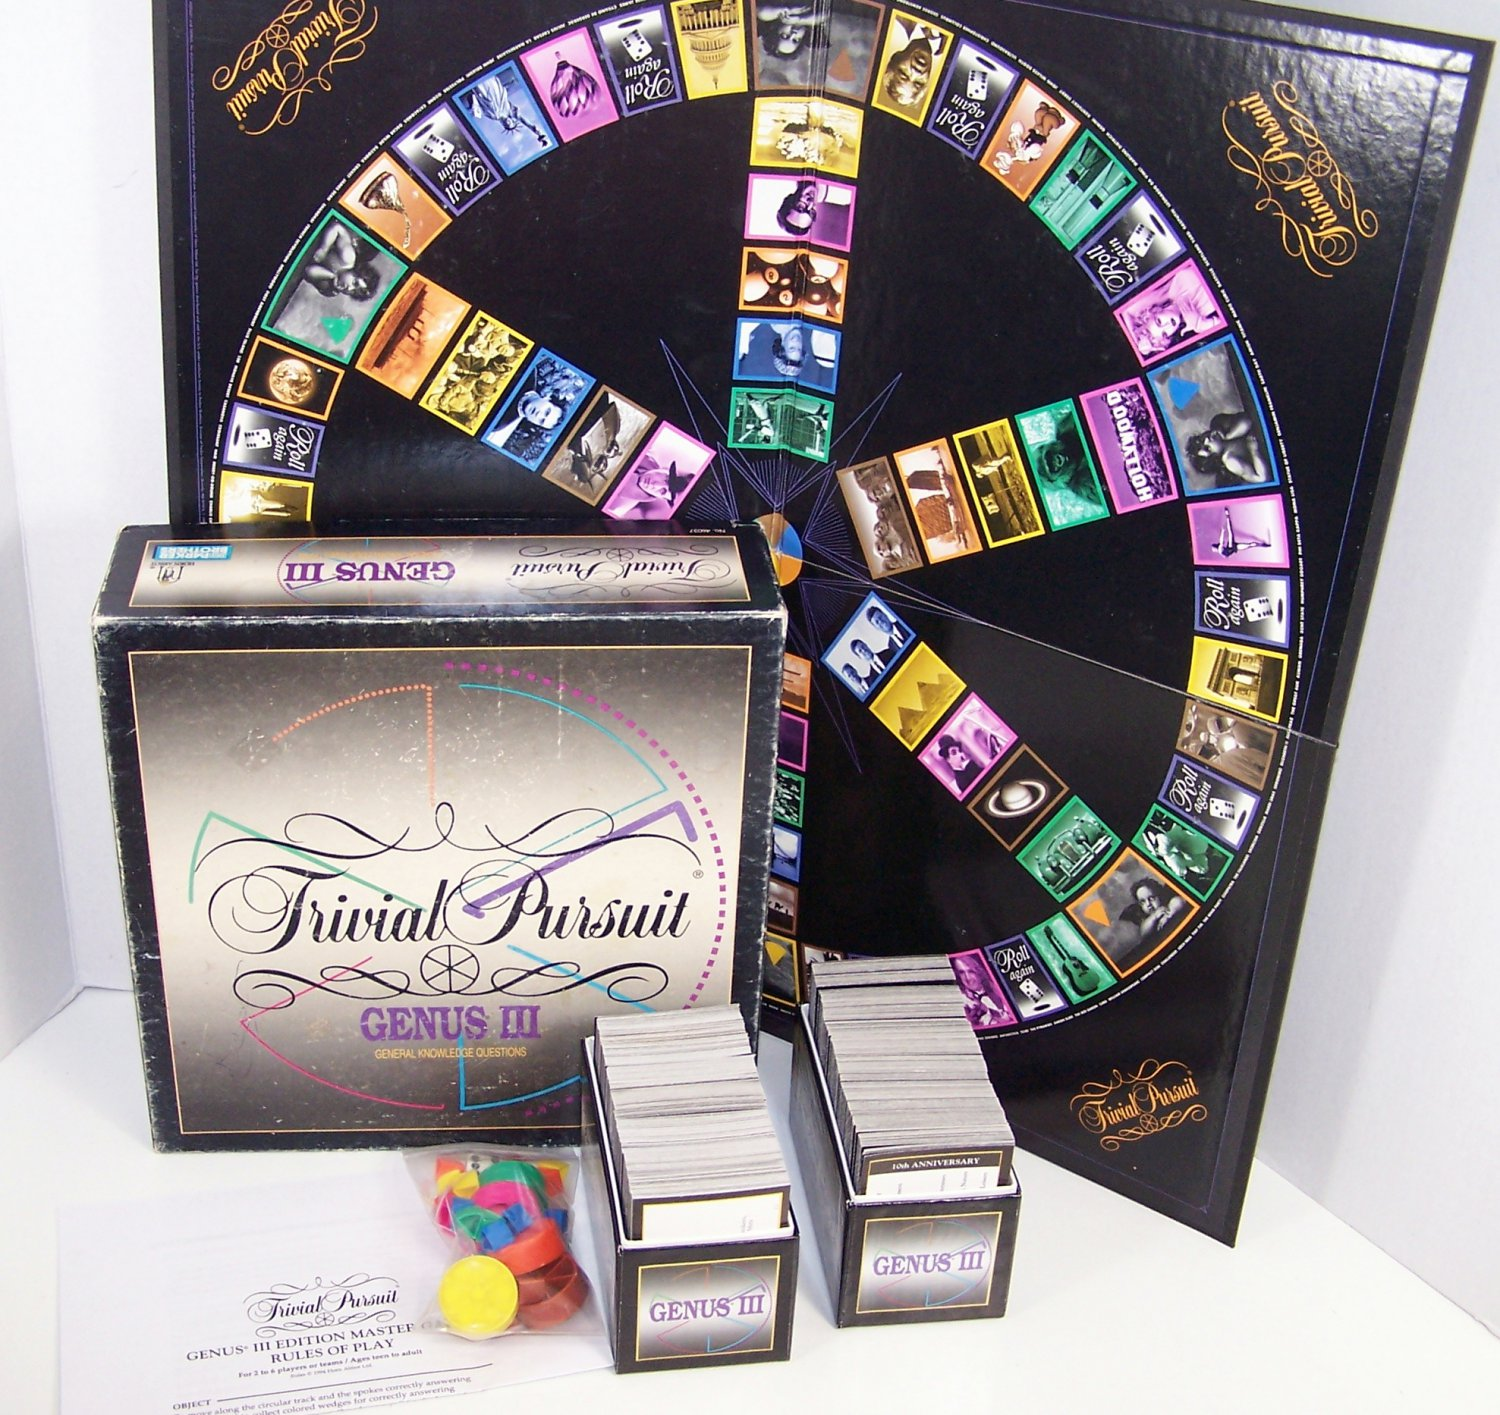 Trivial Pursuit (Genus III Master Game) by Parker Brothers